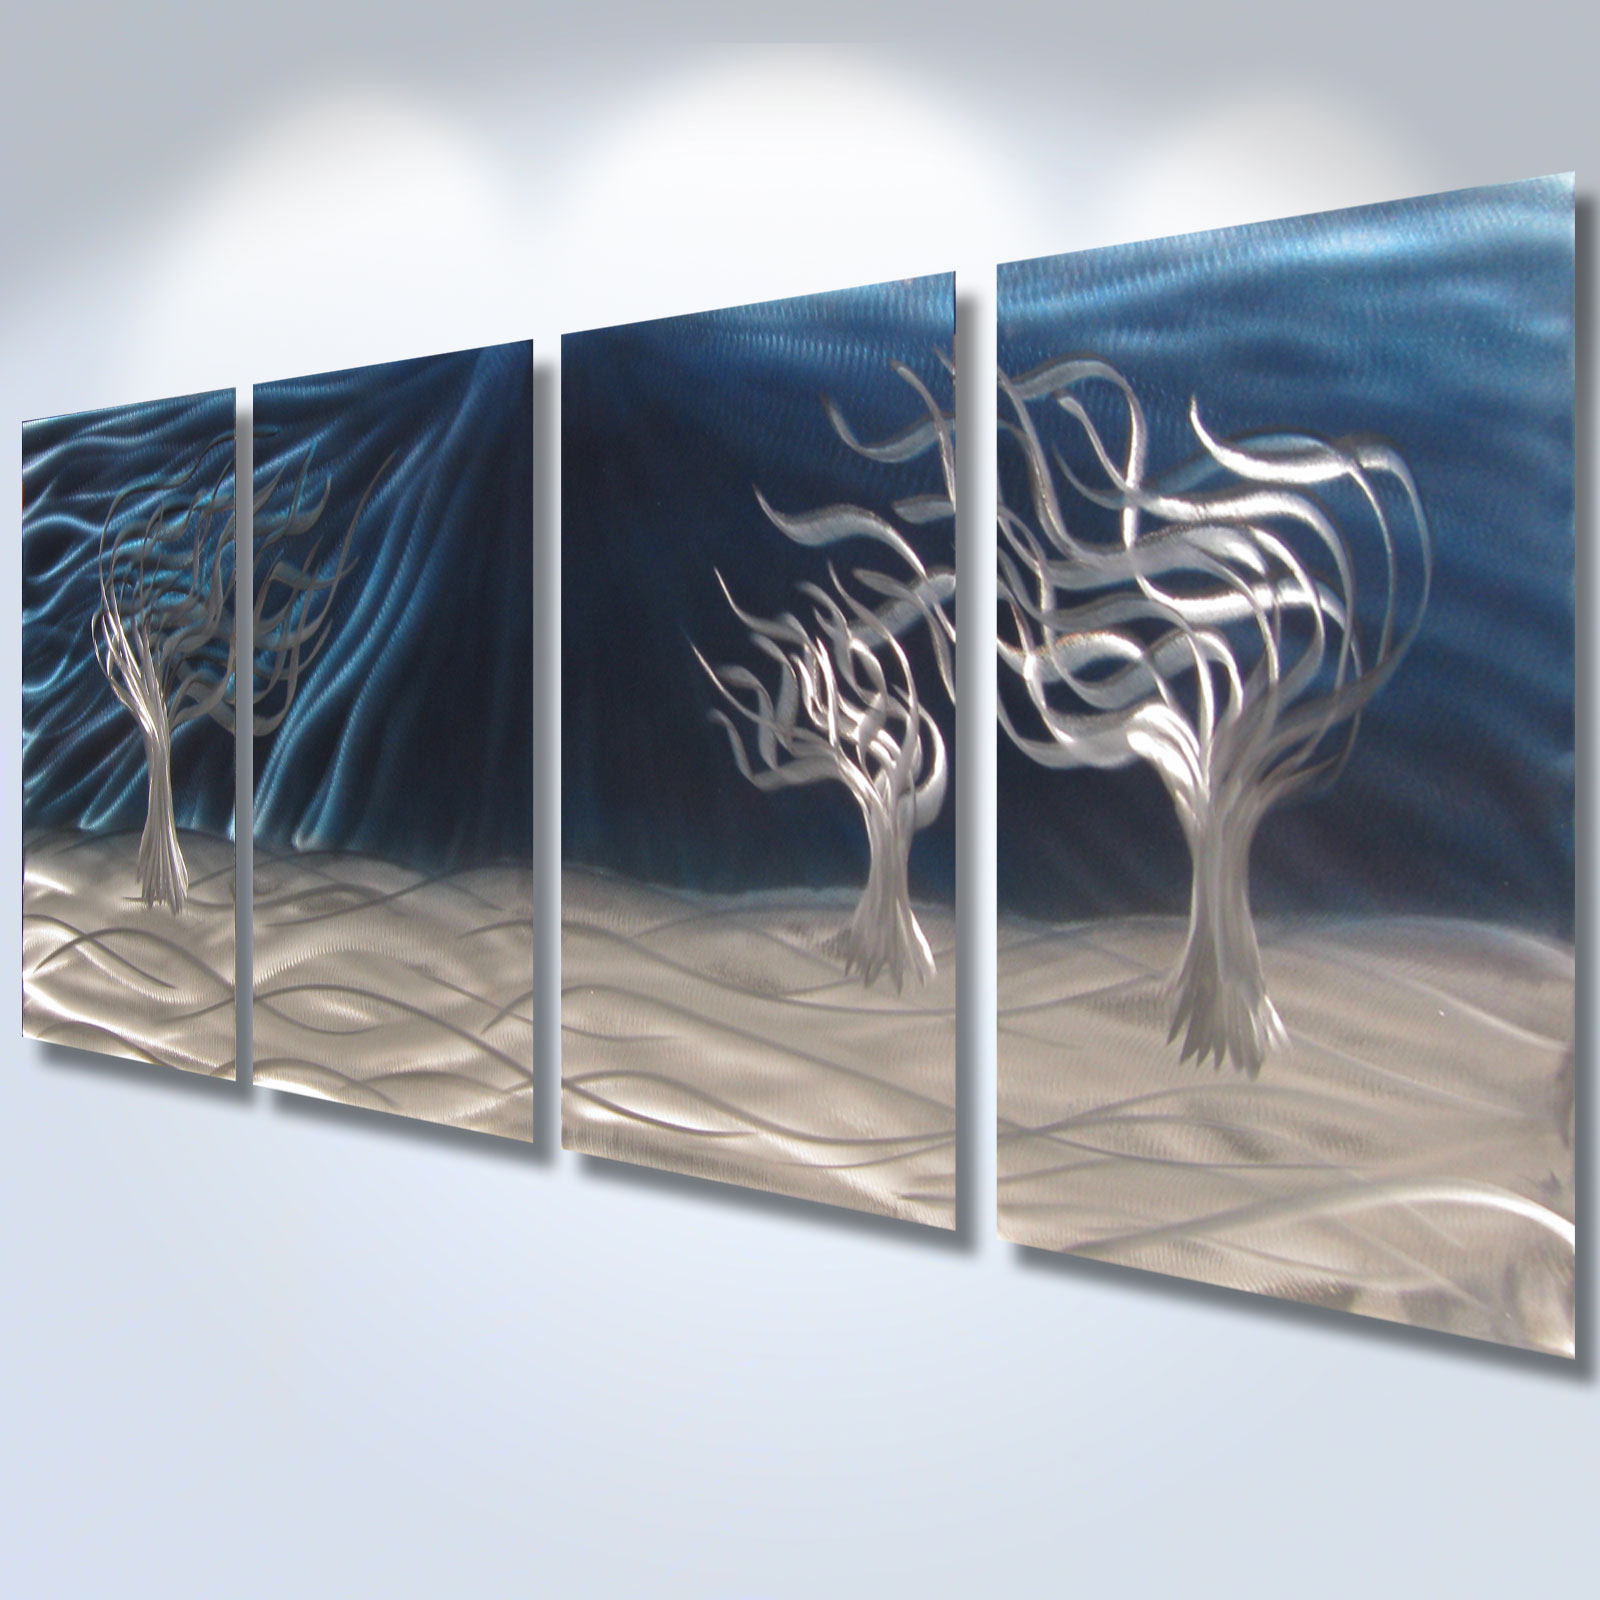 Blue Metal Wall Decor Alluring 3 Trees Blue  Abstract Metal Wall Art Contemporary Modern Decor Design Decoration